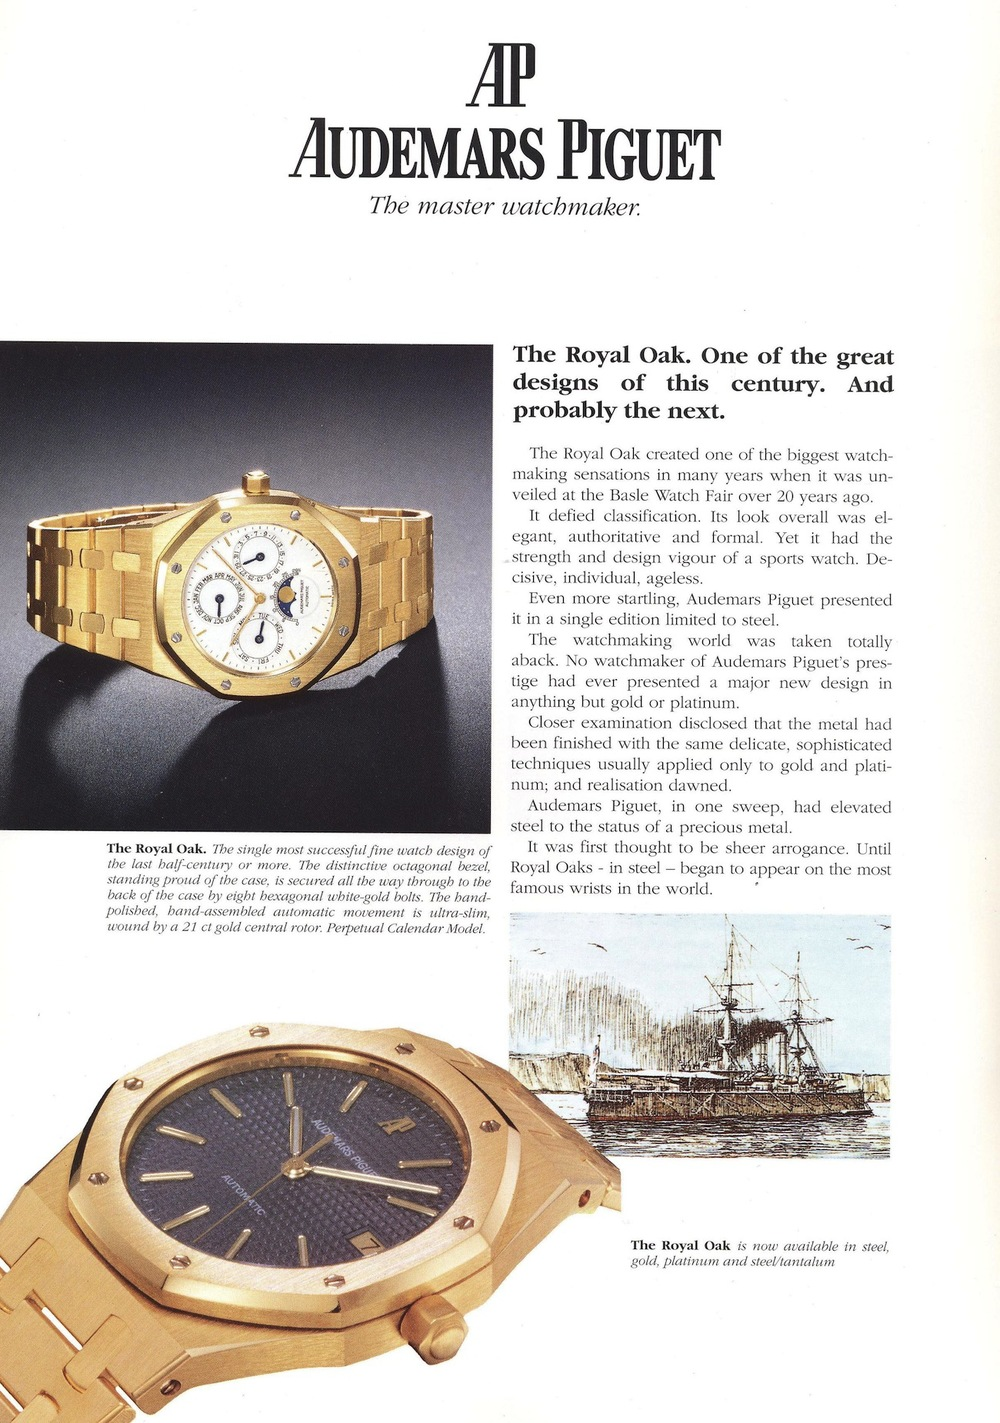 Royal Oak Advertisement circa 1992.